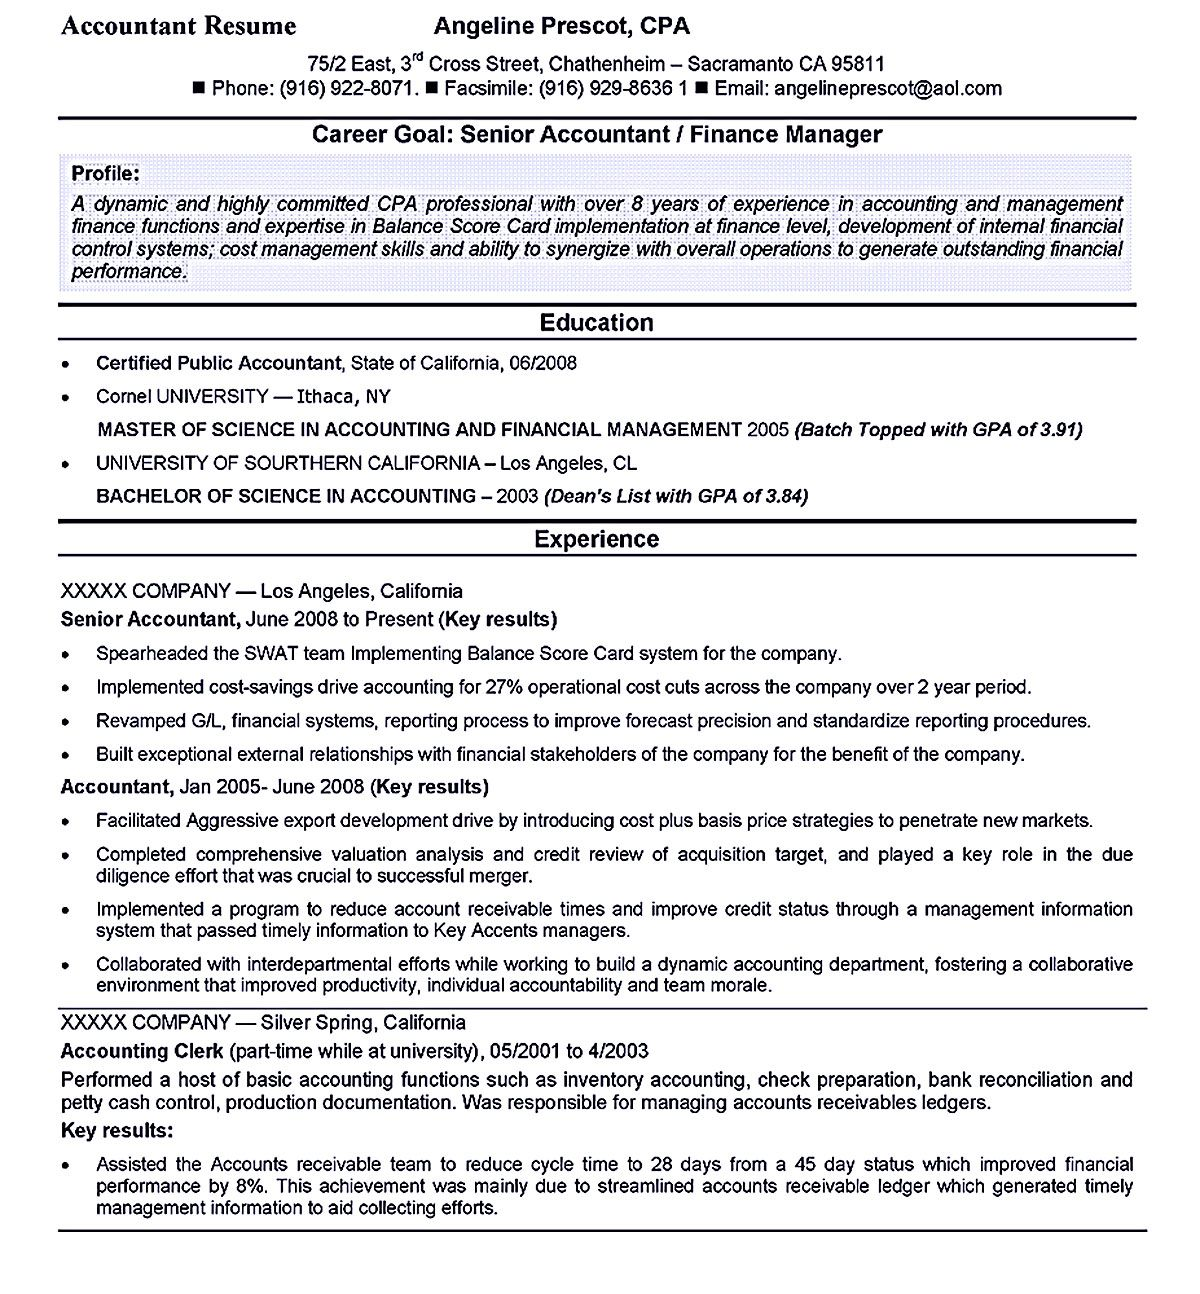 boost your career with accountant resume template objective examples job accounting Resume Accounting Resume Objective Statements